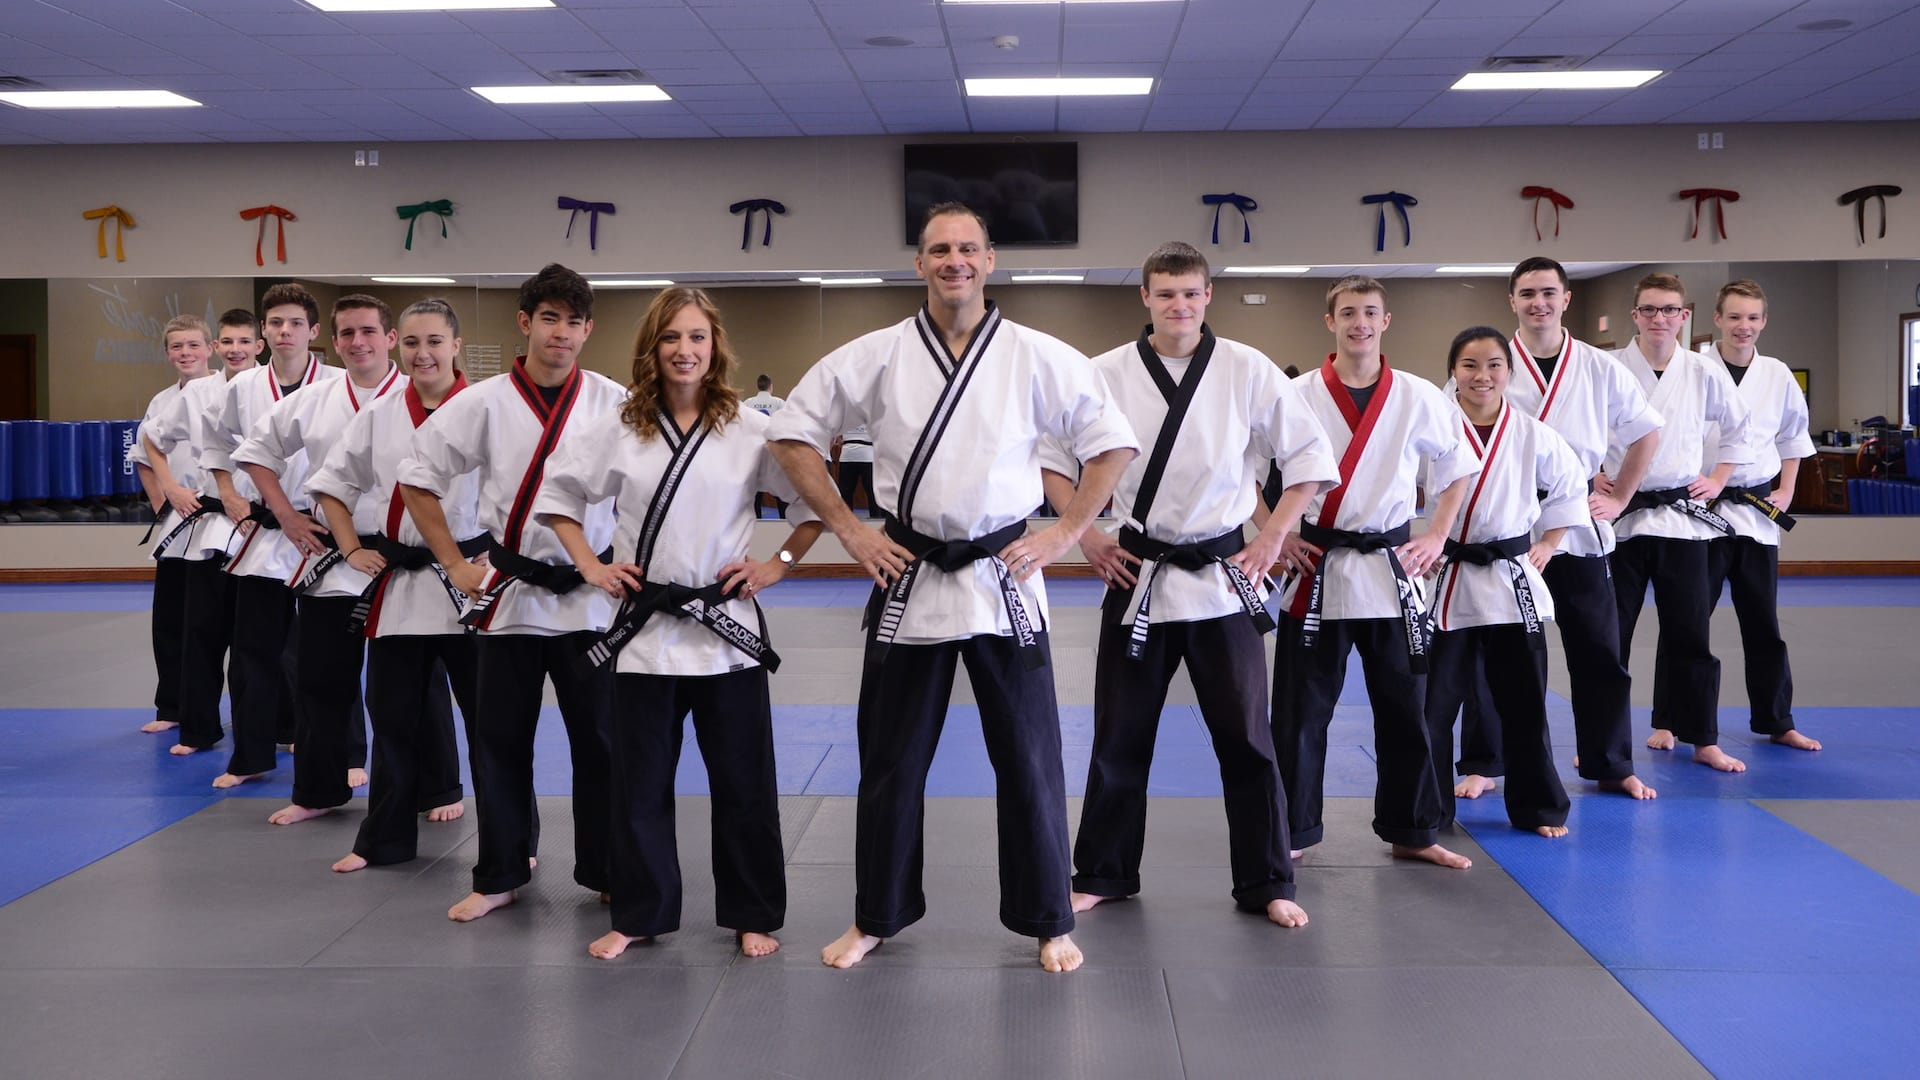 Jeff and Amanda Denu in Appleton - The Academy - Martial Arts Leadership